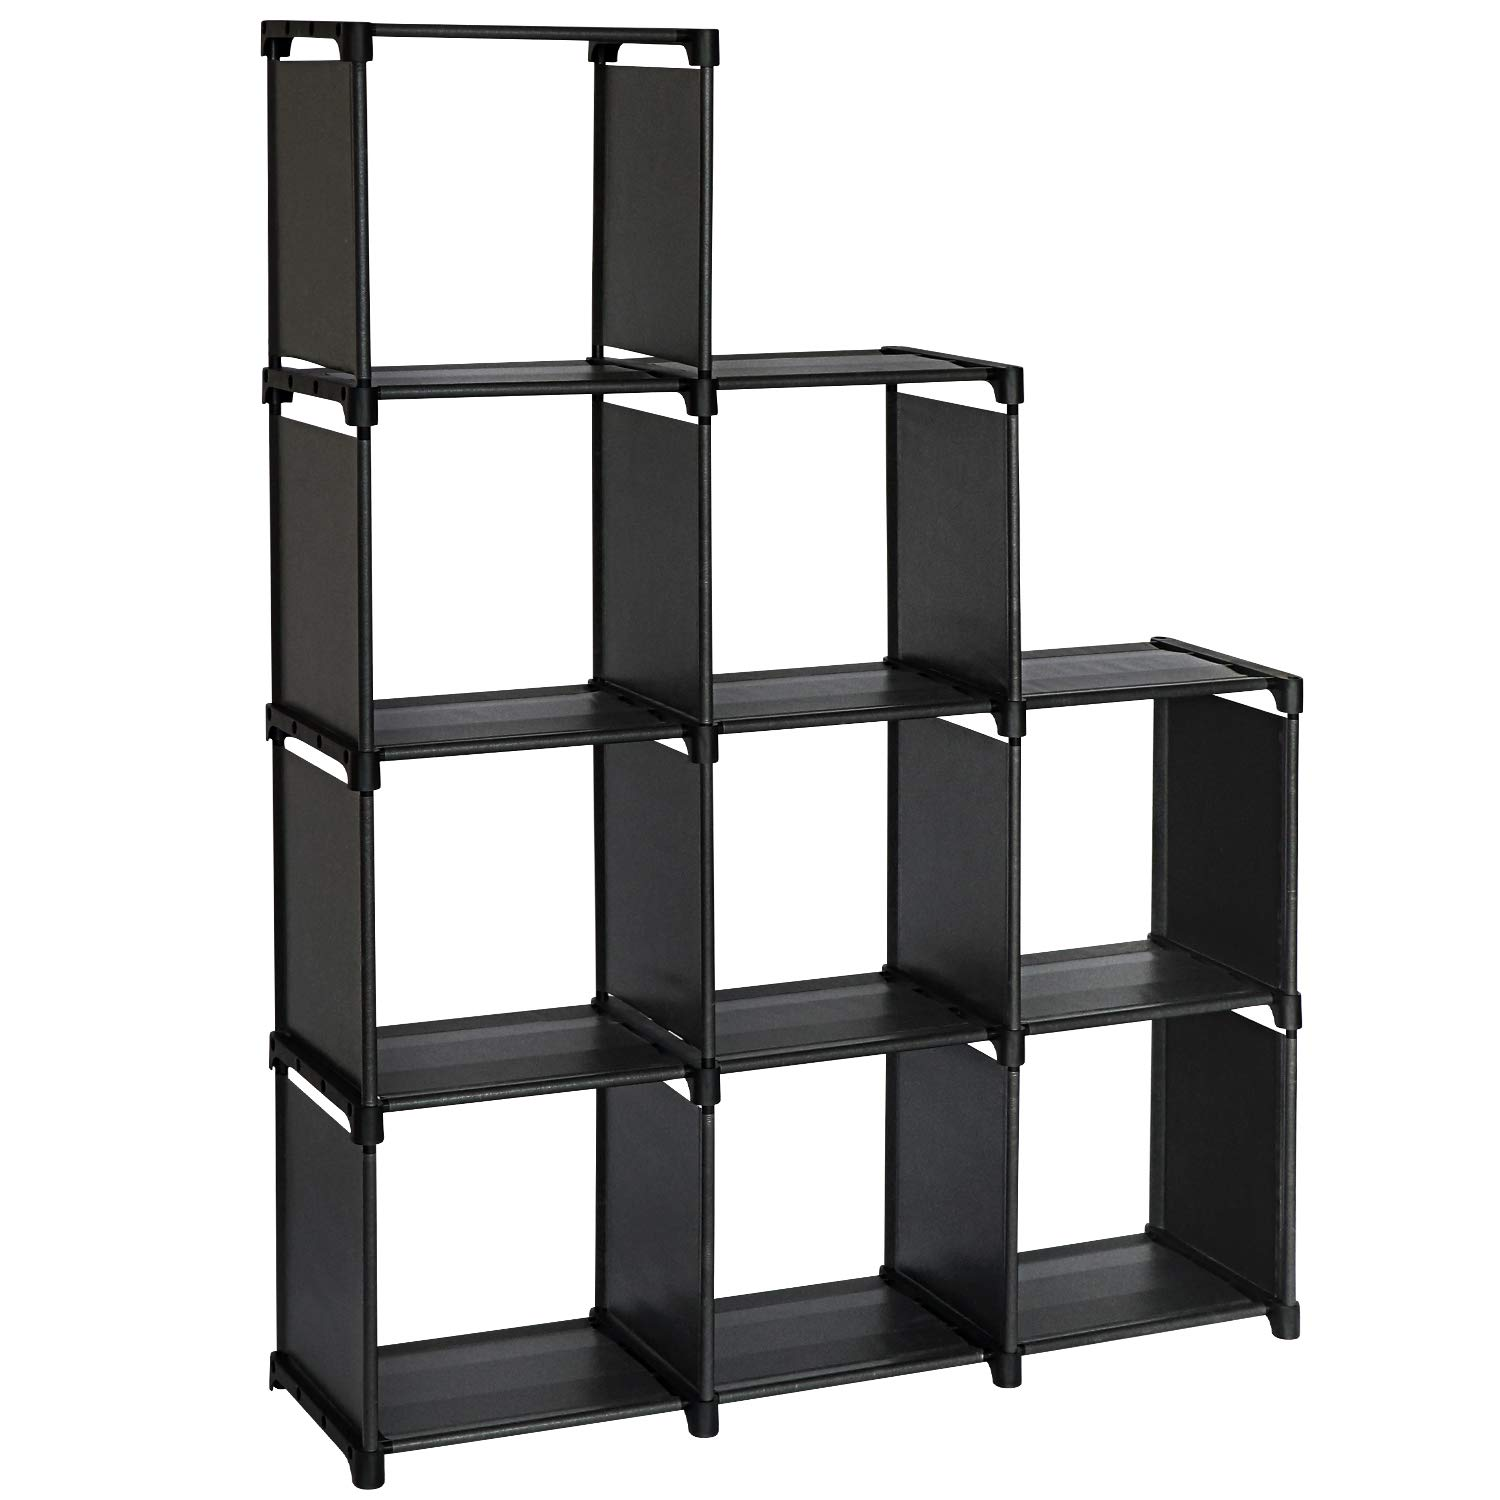 Amazon Com Topnew 9 Cube Storage Shelves Diy Closet Organizers And Storage Black Cube Bookcase In Living Room Bedroom Kid S Room For Books Clothes Toys Shoes And Daily Necessities Kitchen Dining